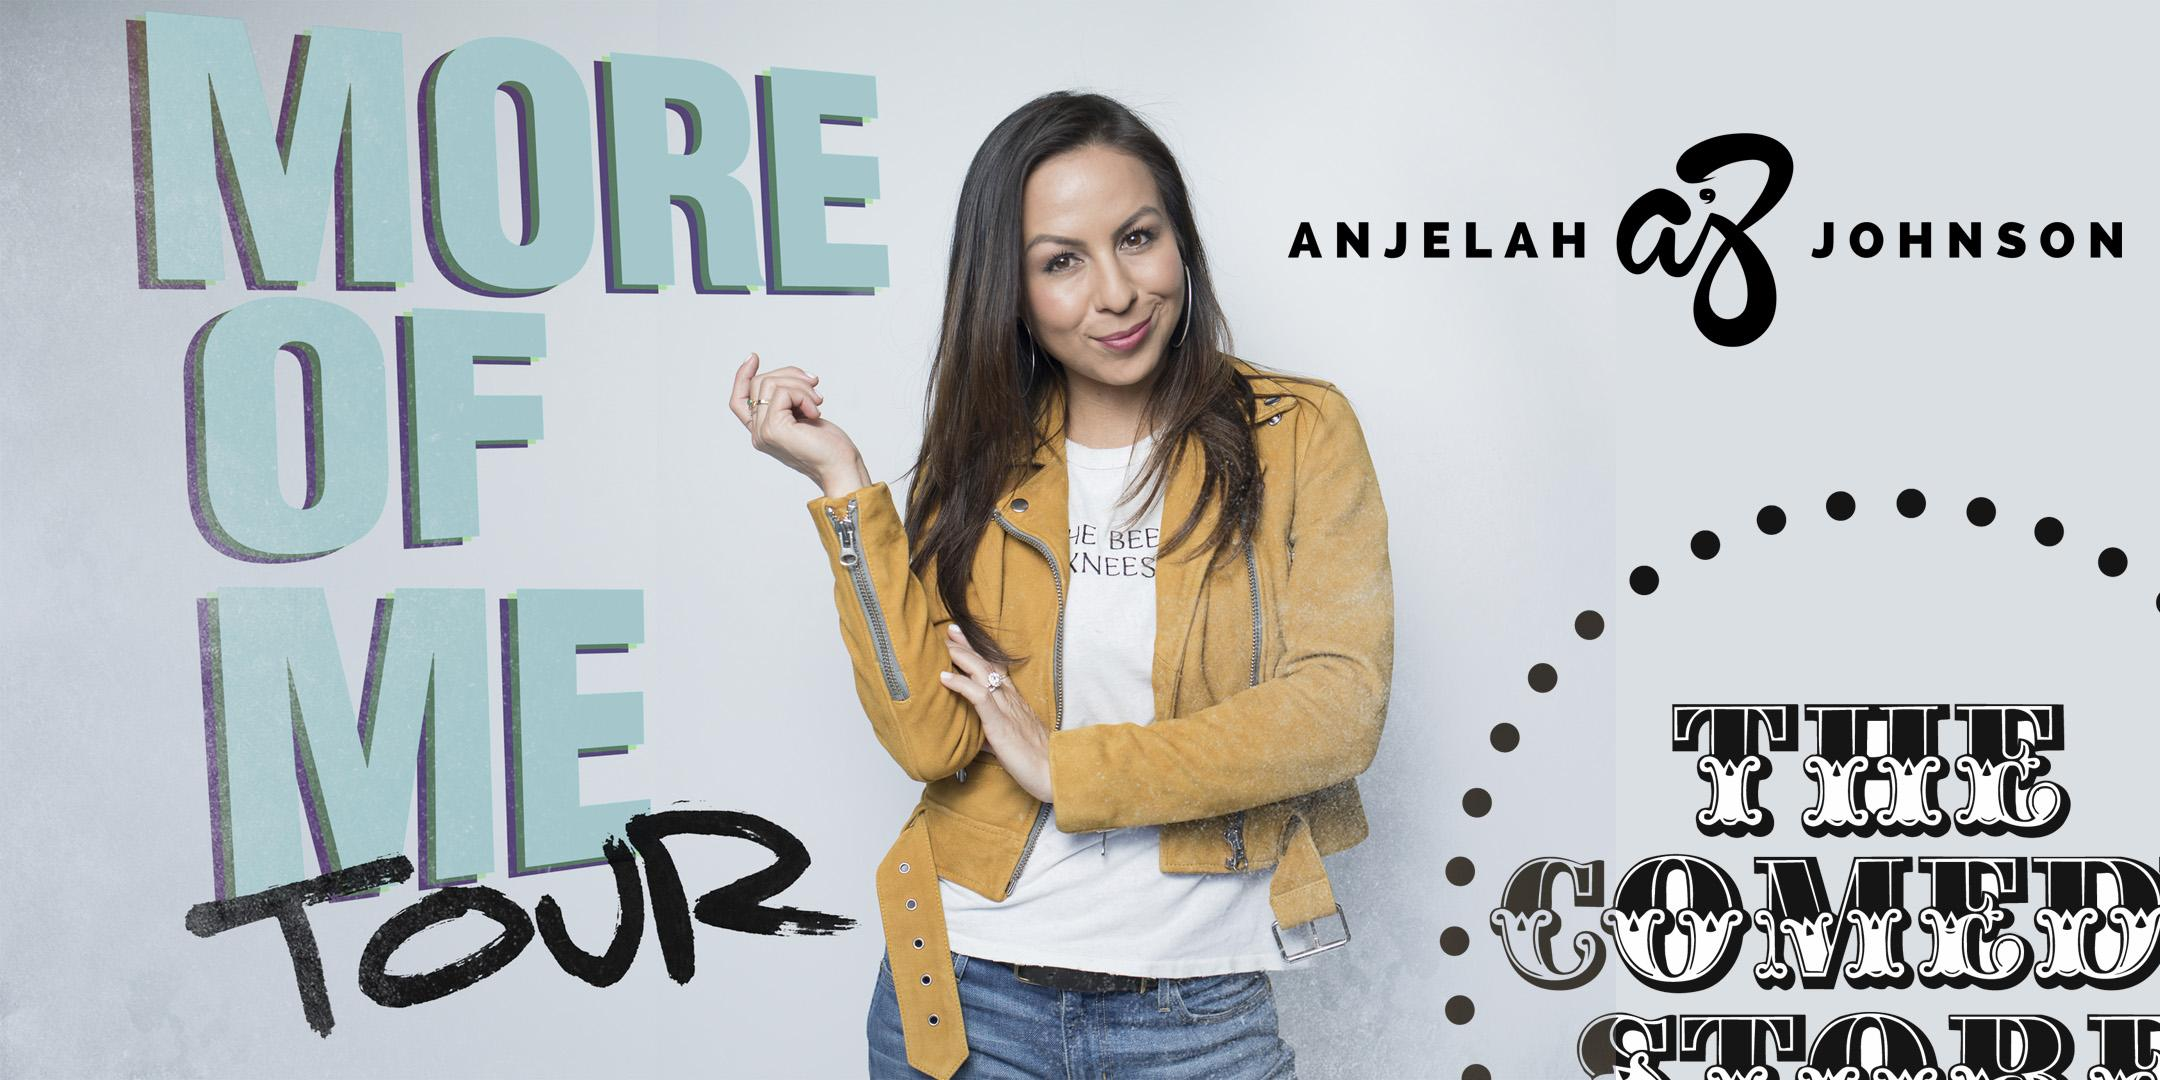 Anjelah Johnson - March 10th - Sunday 7:30pm